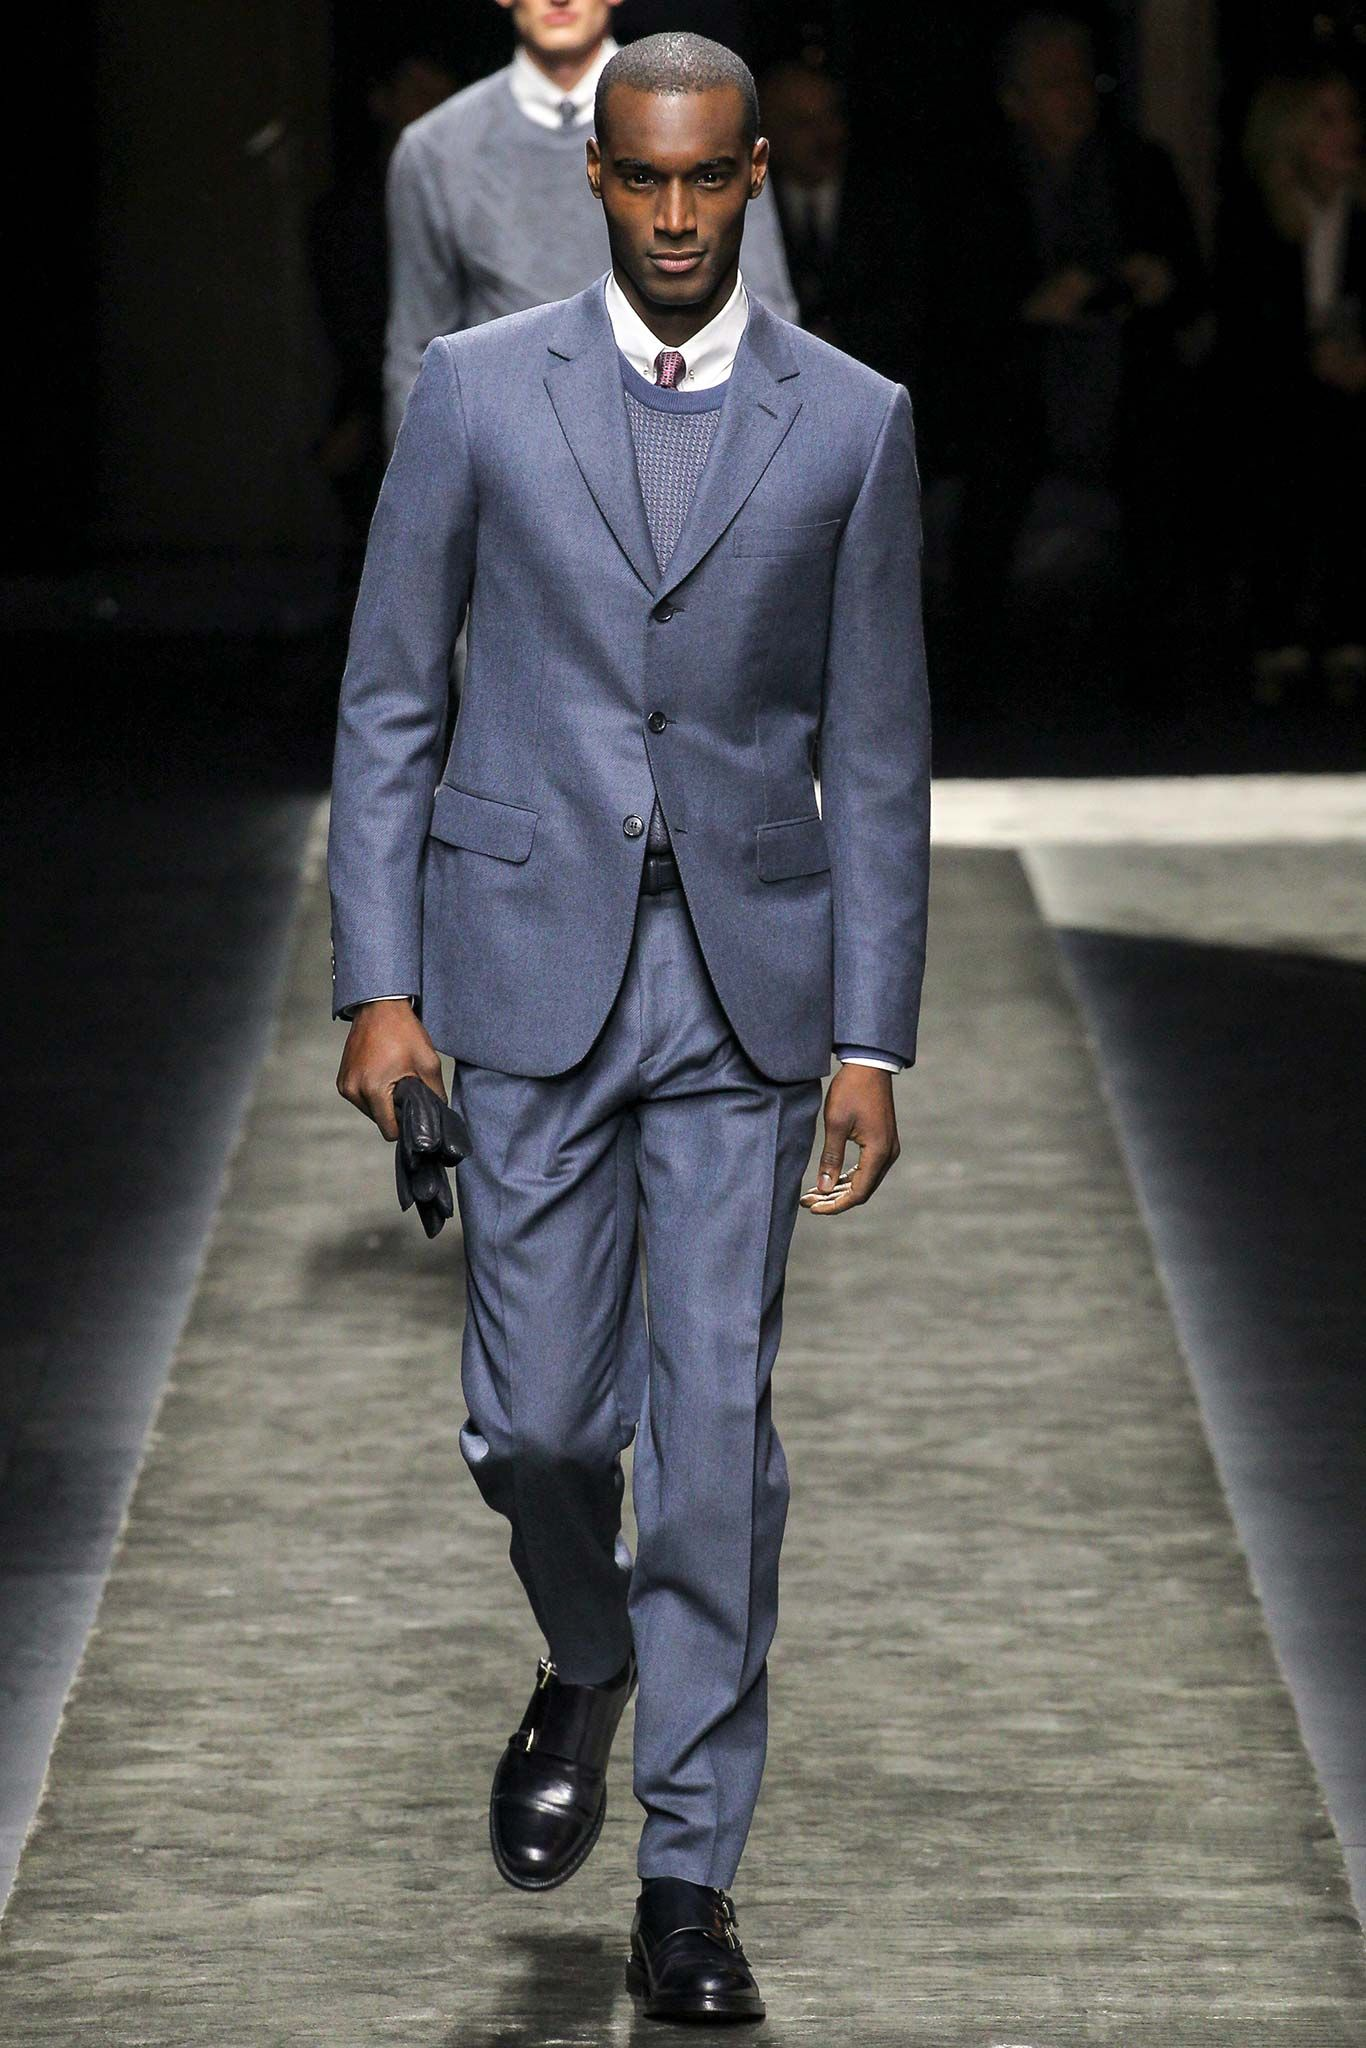 26afc85a2 Brioni - Fall 2015 Menswear - Look 38 of 56 | Fashion - Women and ...